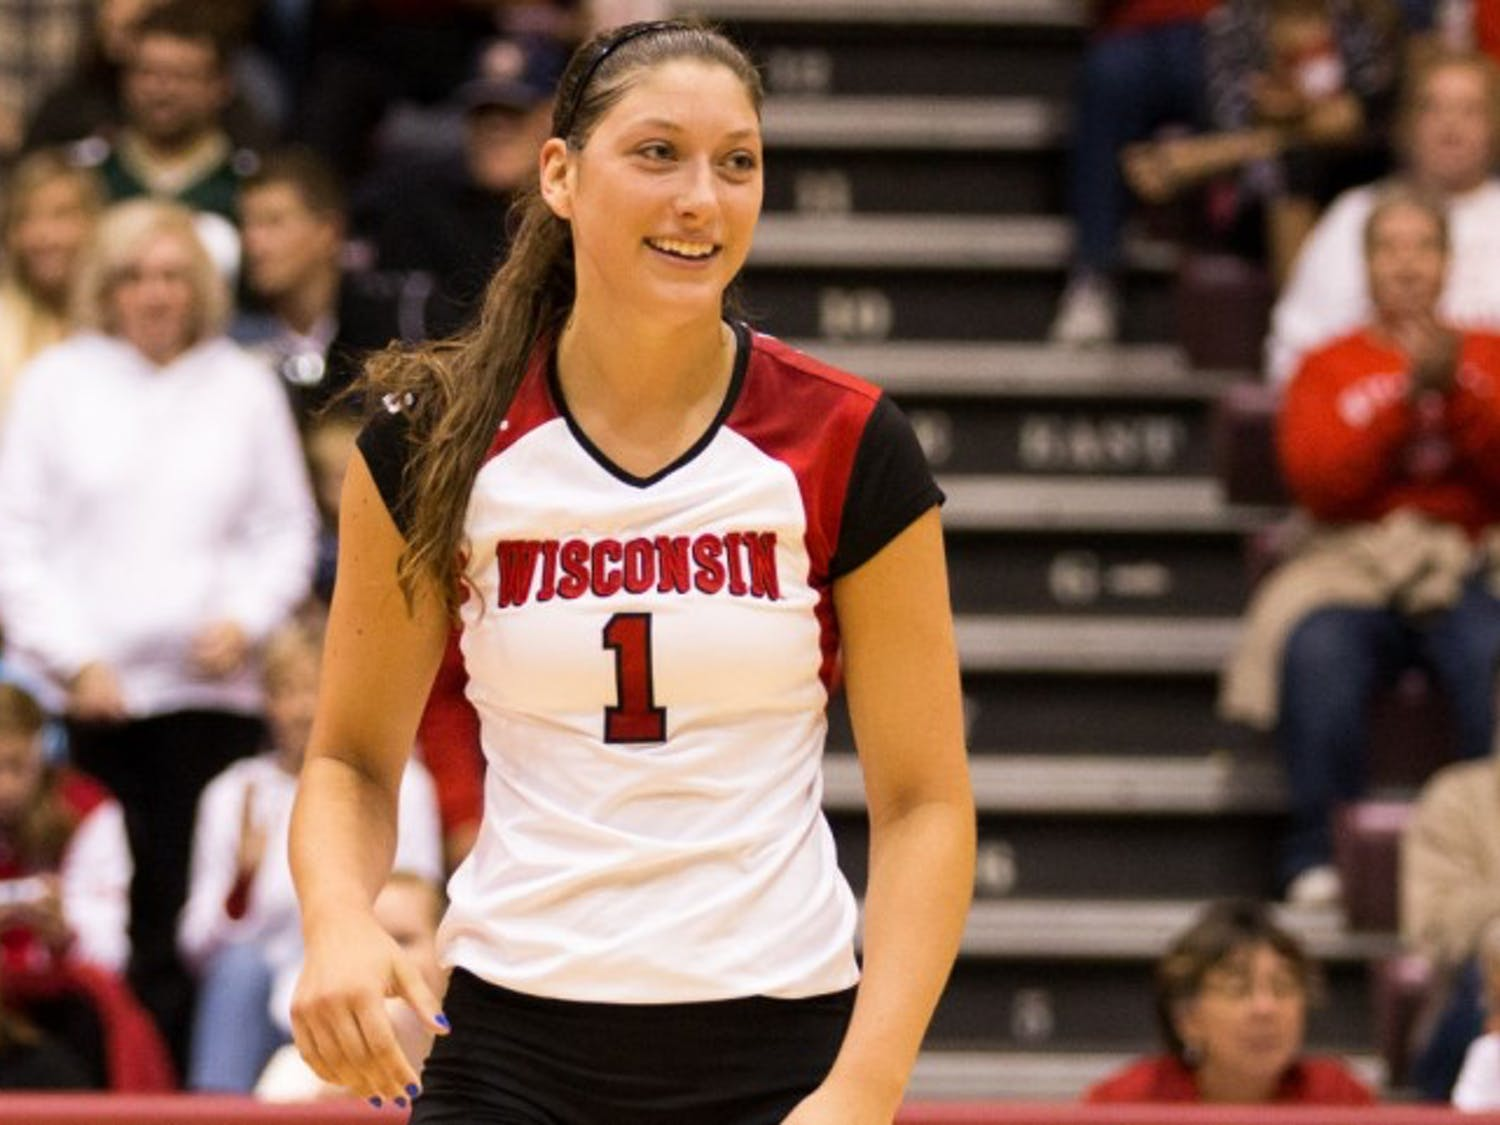 Lauren Carlini dominated yet again to open Big Ten conference play as the Badgers swept both Ohio State and Maryland.